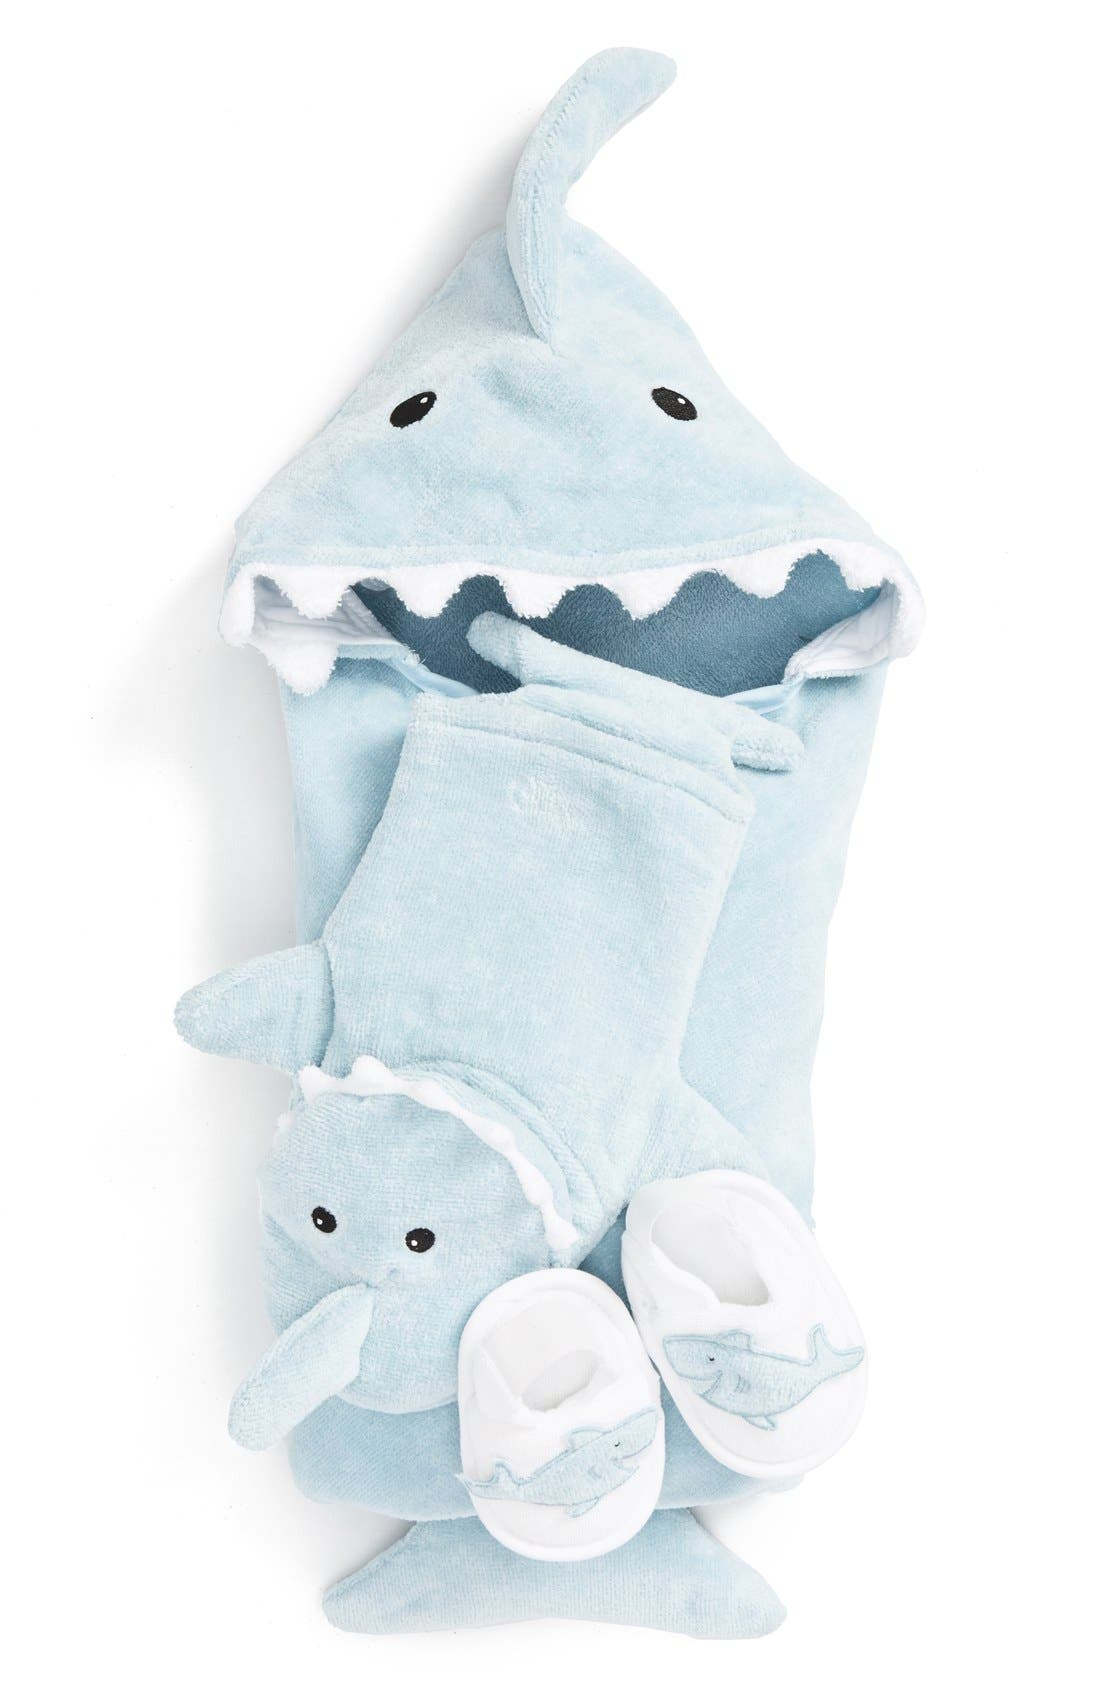 BABY ASPEN 'Let the Fin Begin' Hooded Terry Robe, Bath Mitt & Slippers Set, Main, color, LIGHT BLUE